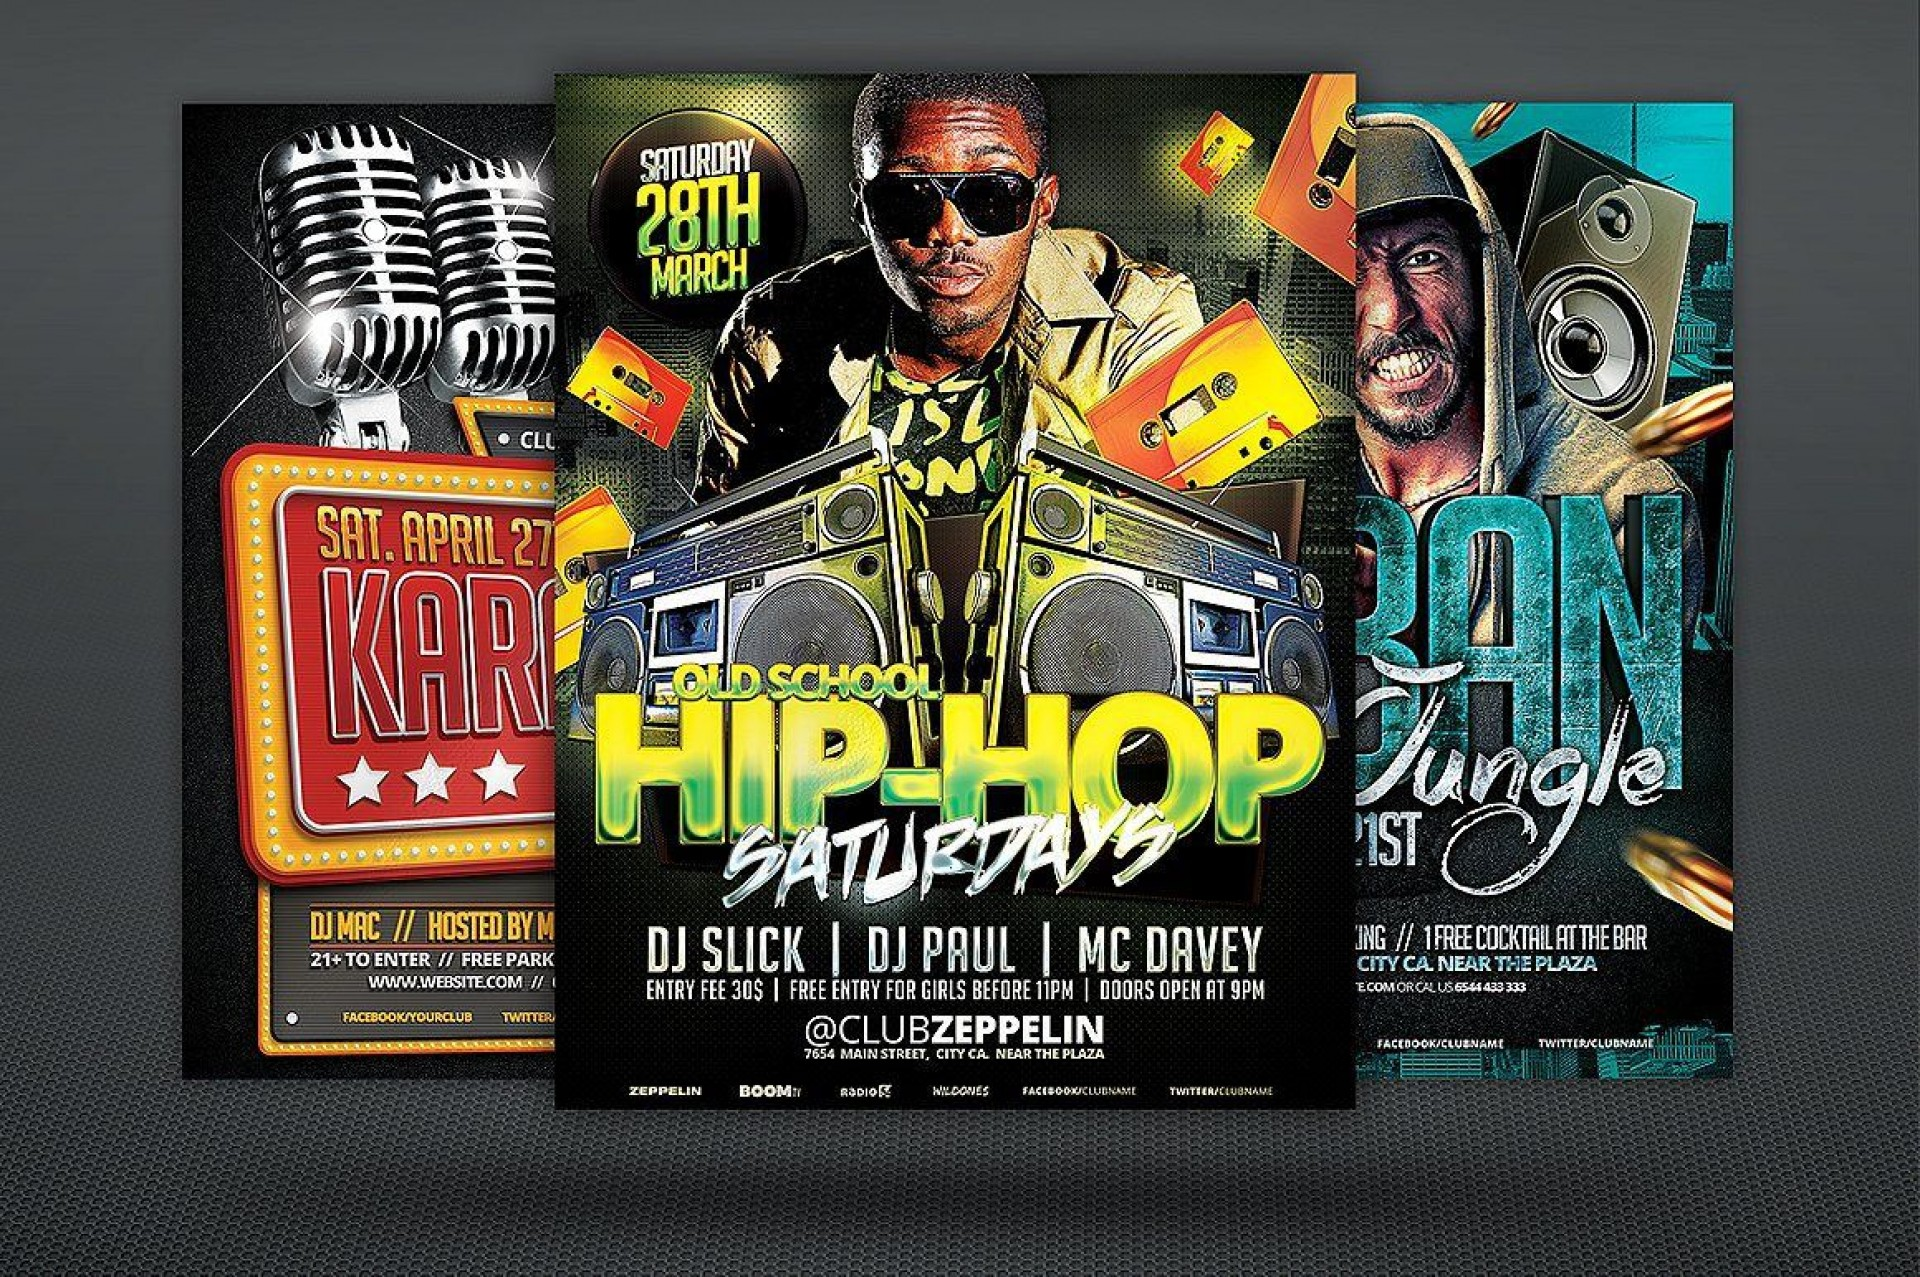 008 Sensational Free Party Flyer Template For Mac High Def 1920